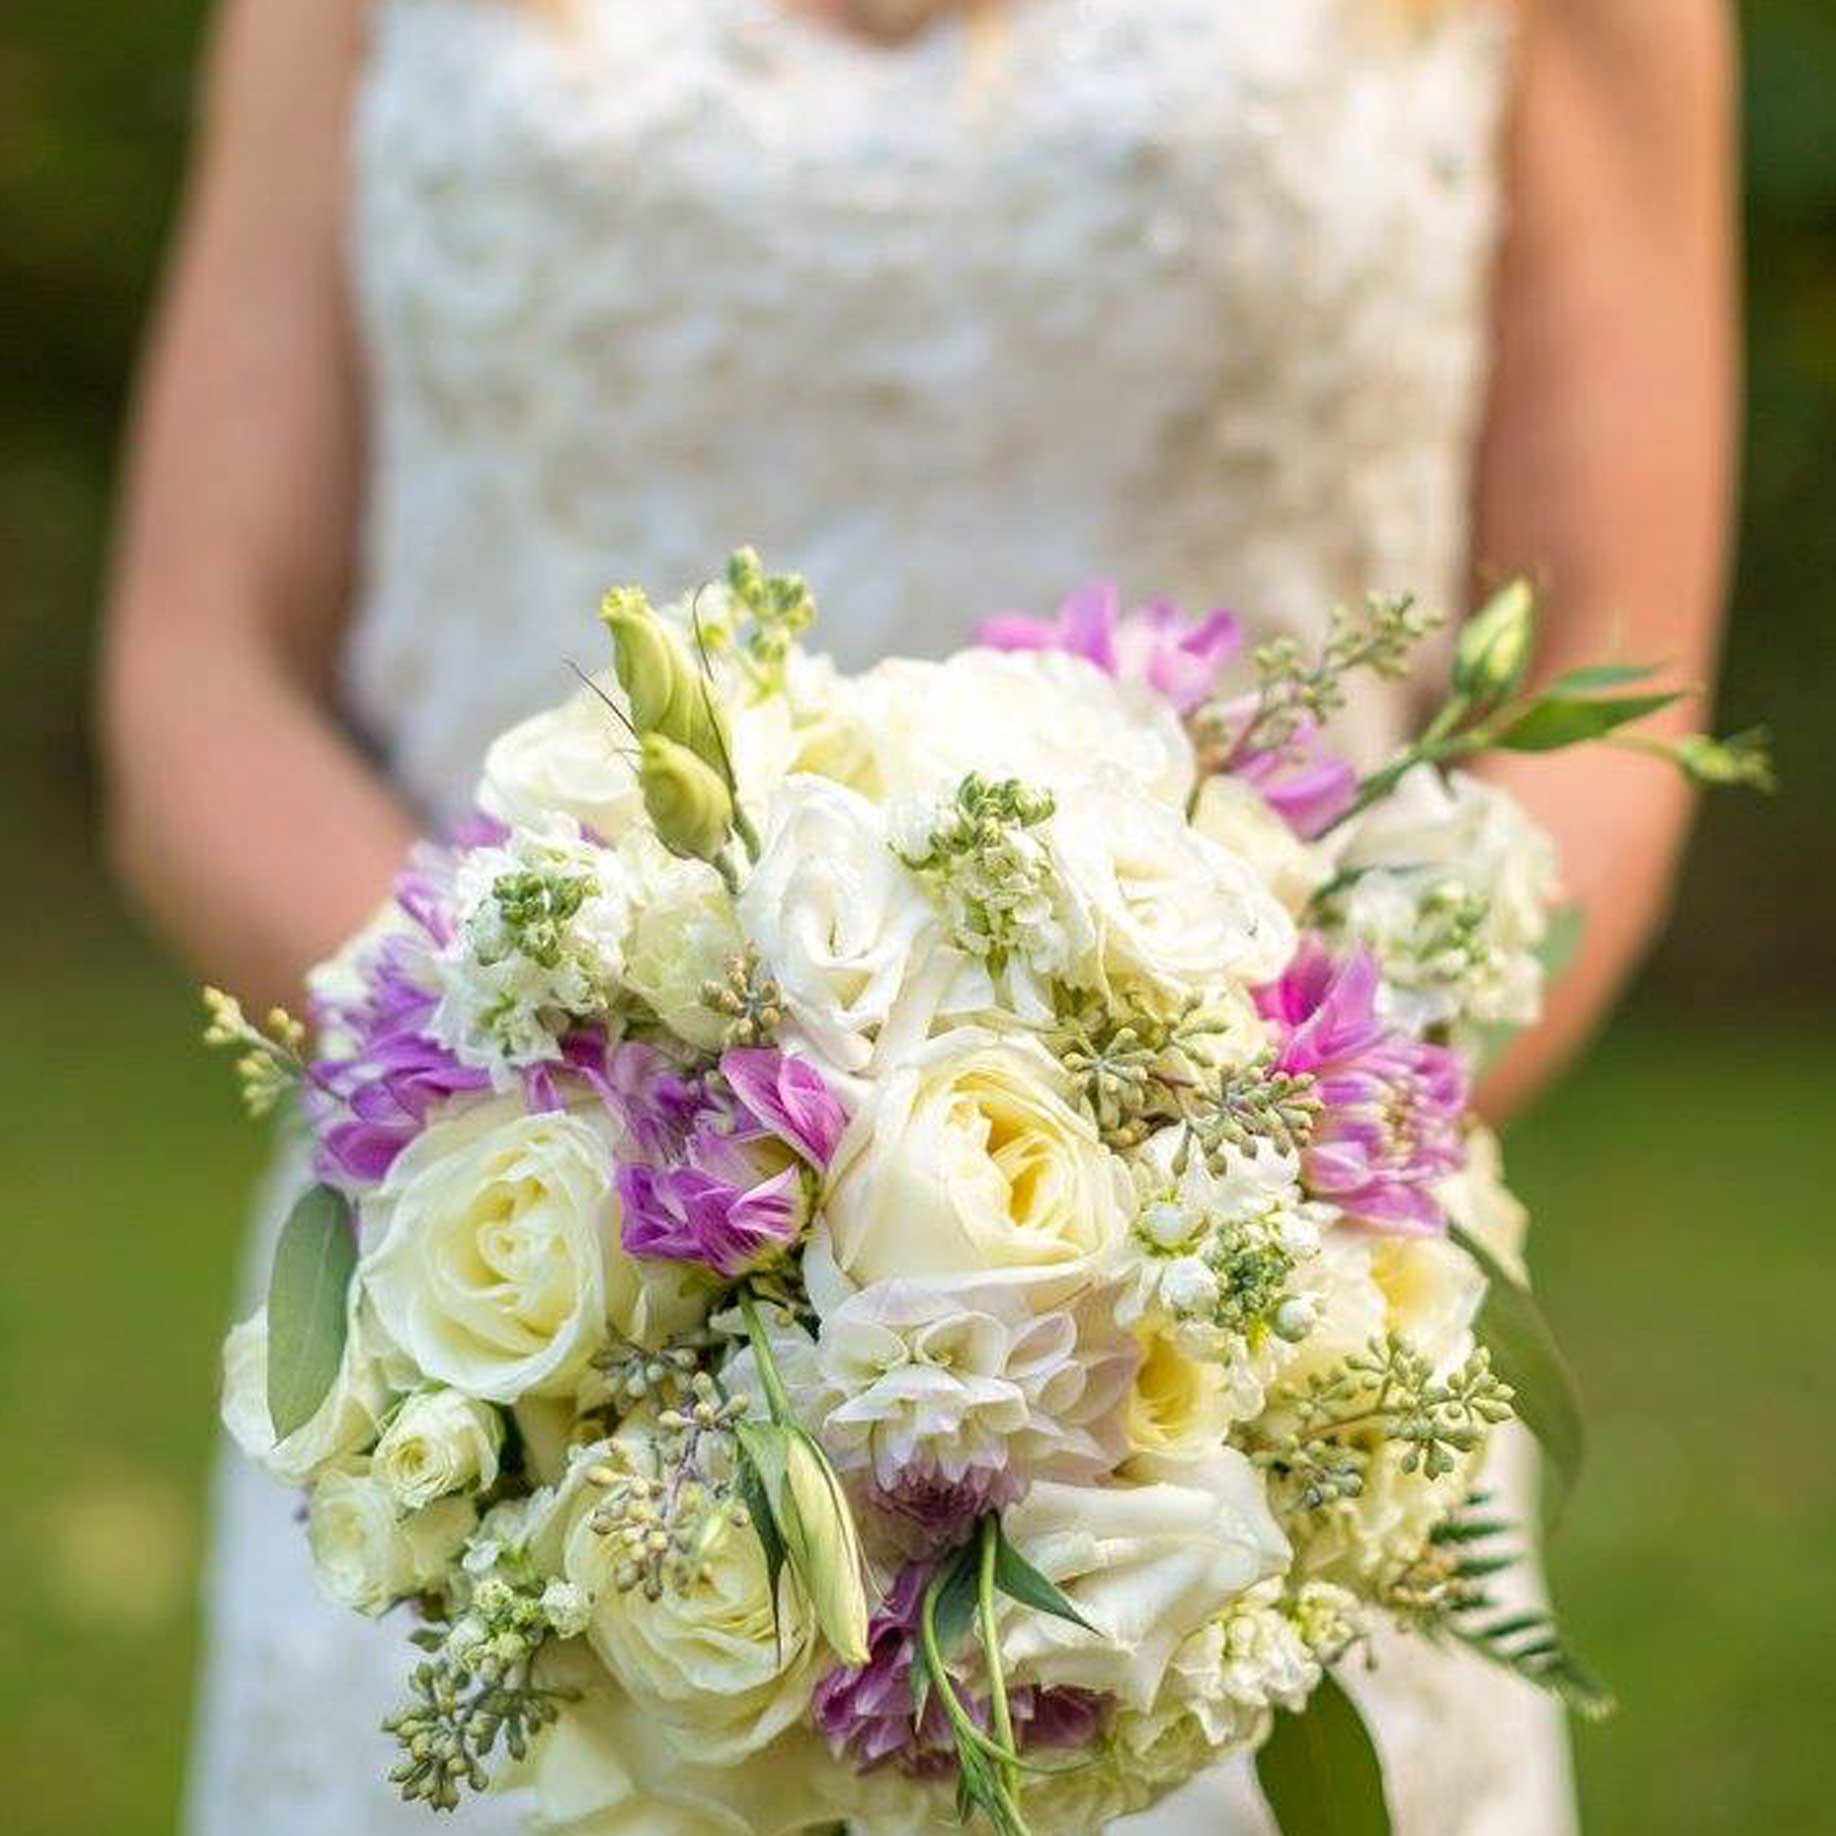 Summer Weddings - Bouquets, corsages, and more